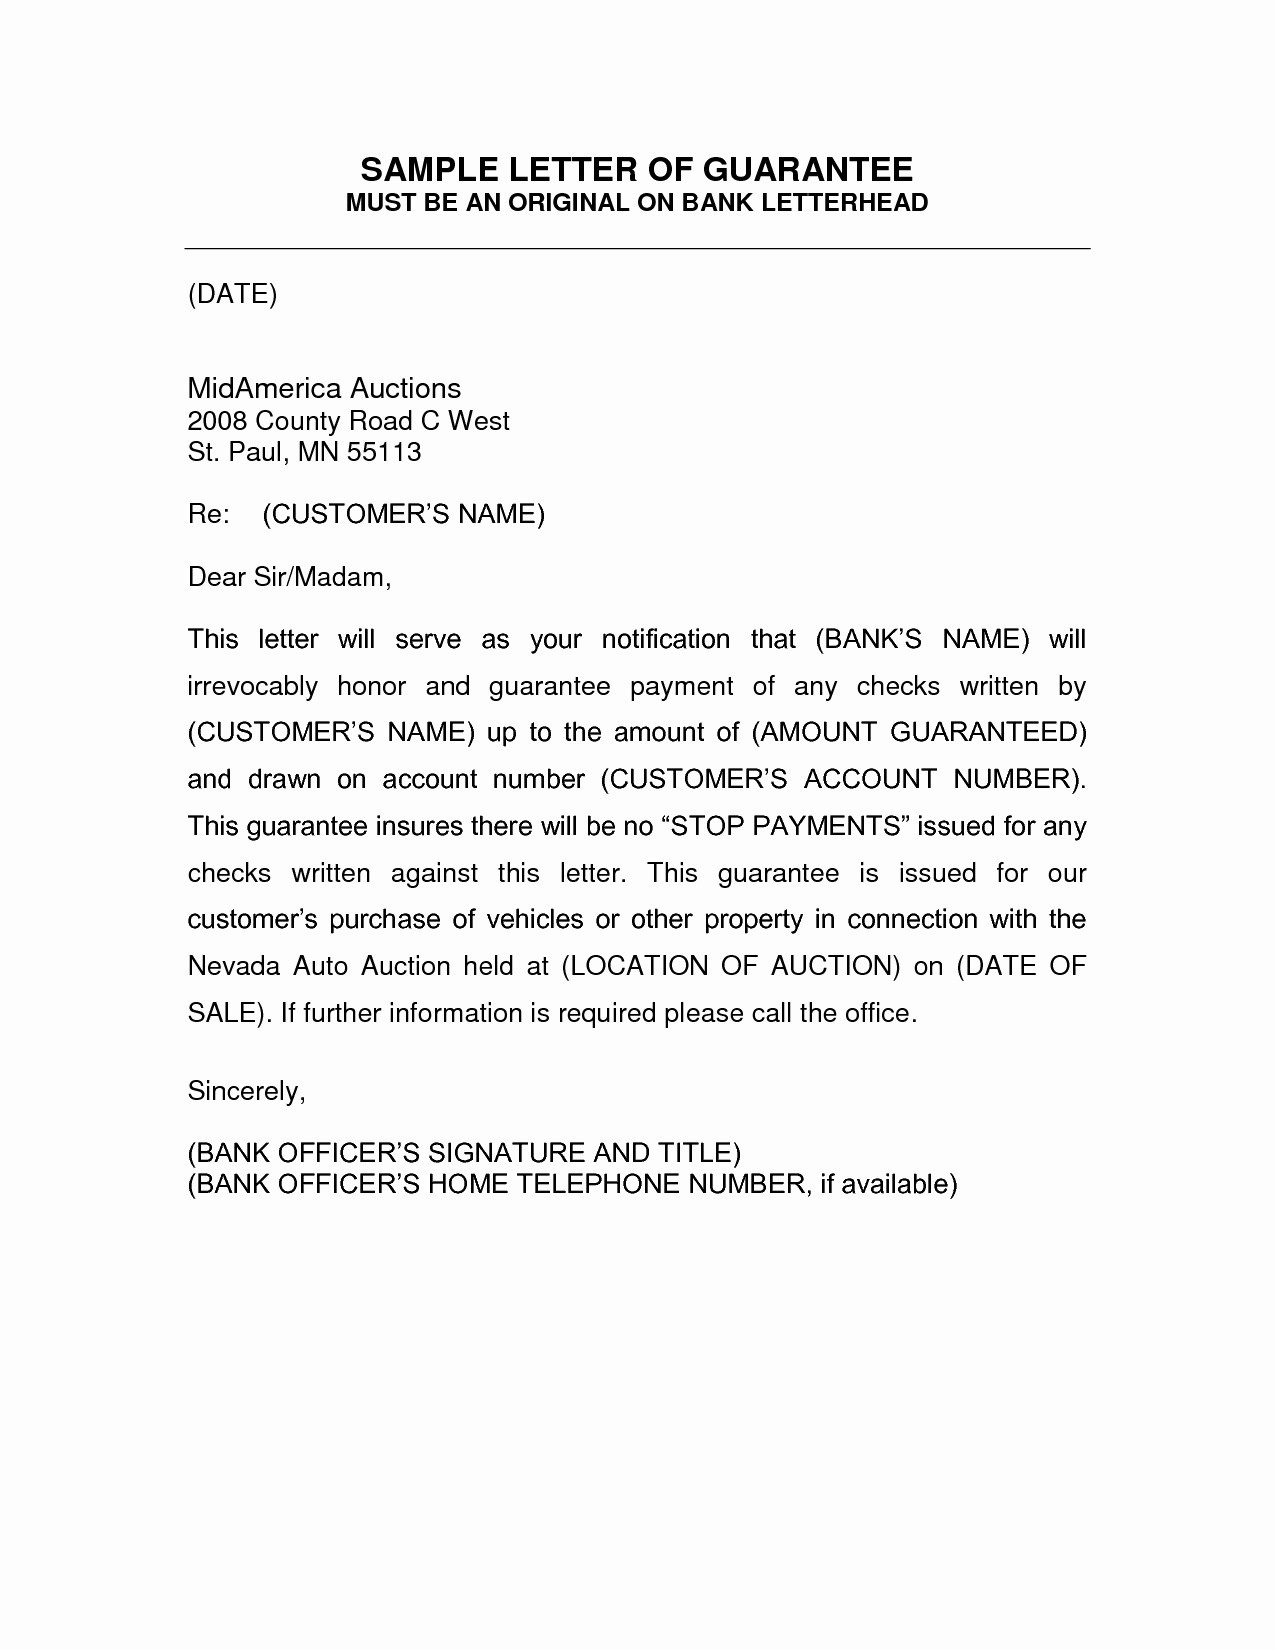 Letters Of Guarantee Templates New Letter Of Guarantee Template Auto Title – Aktin